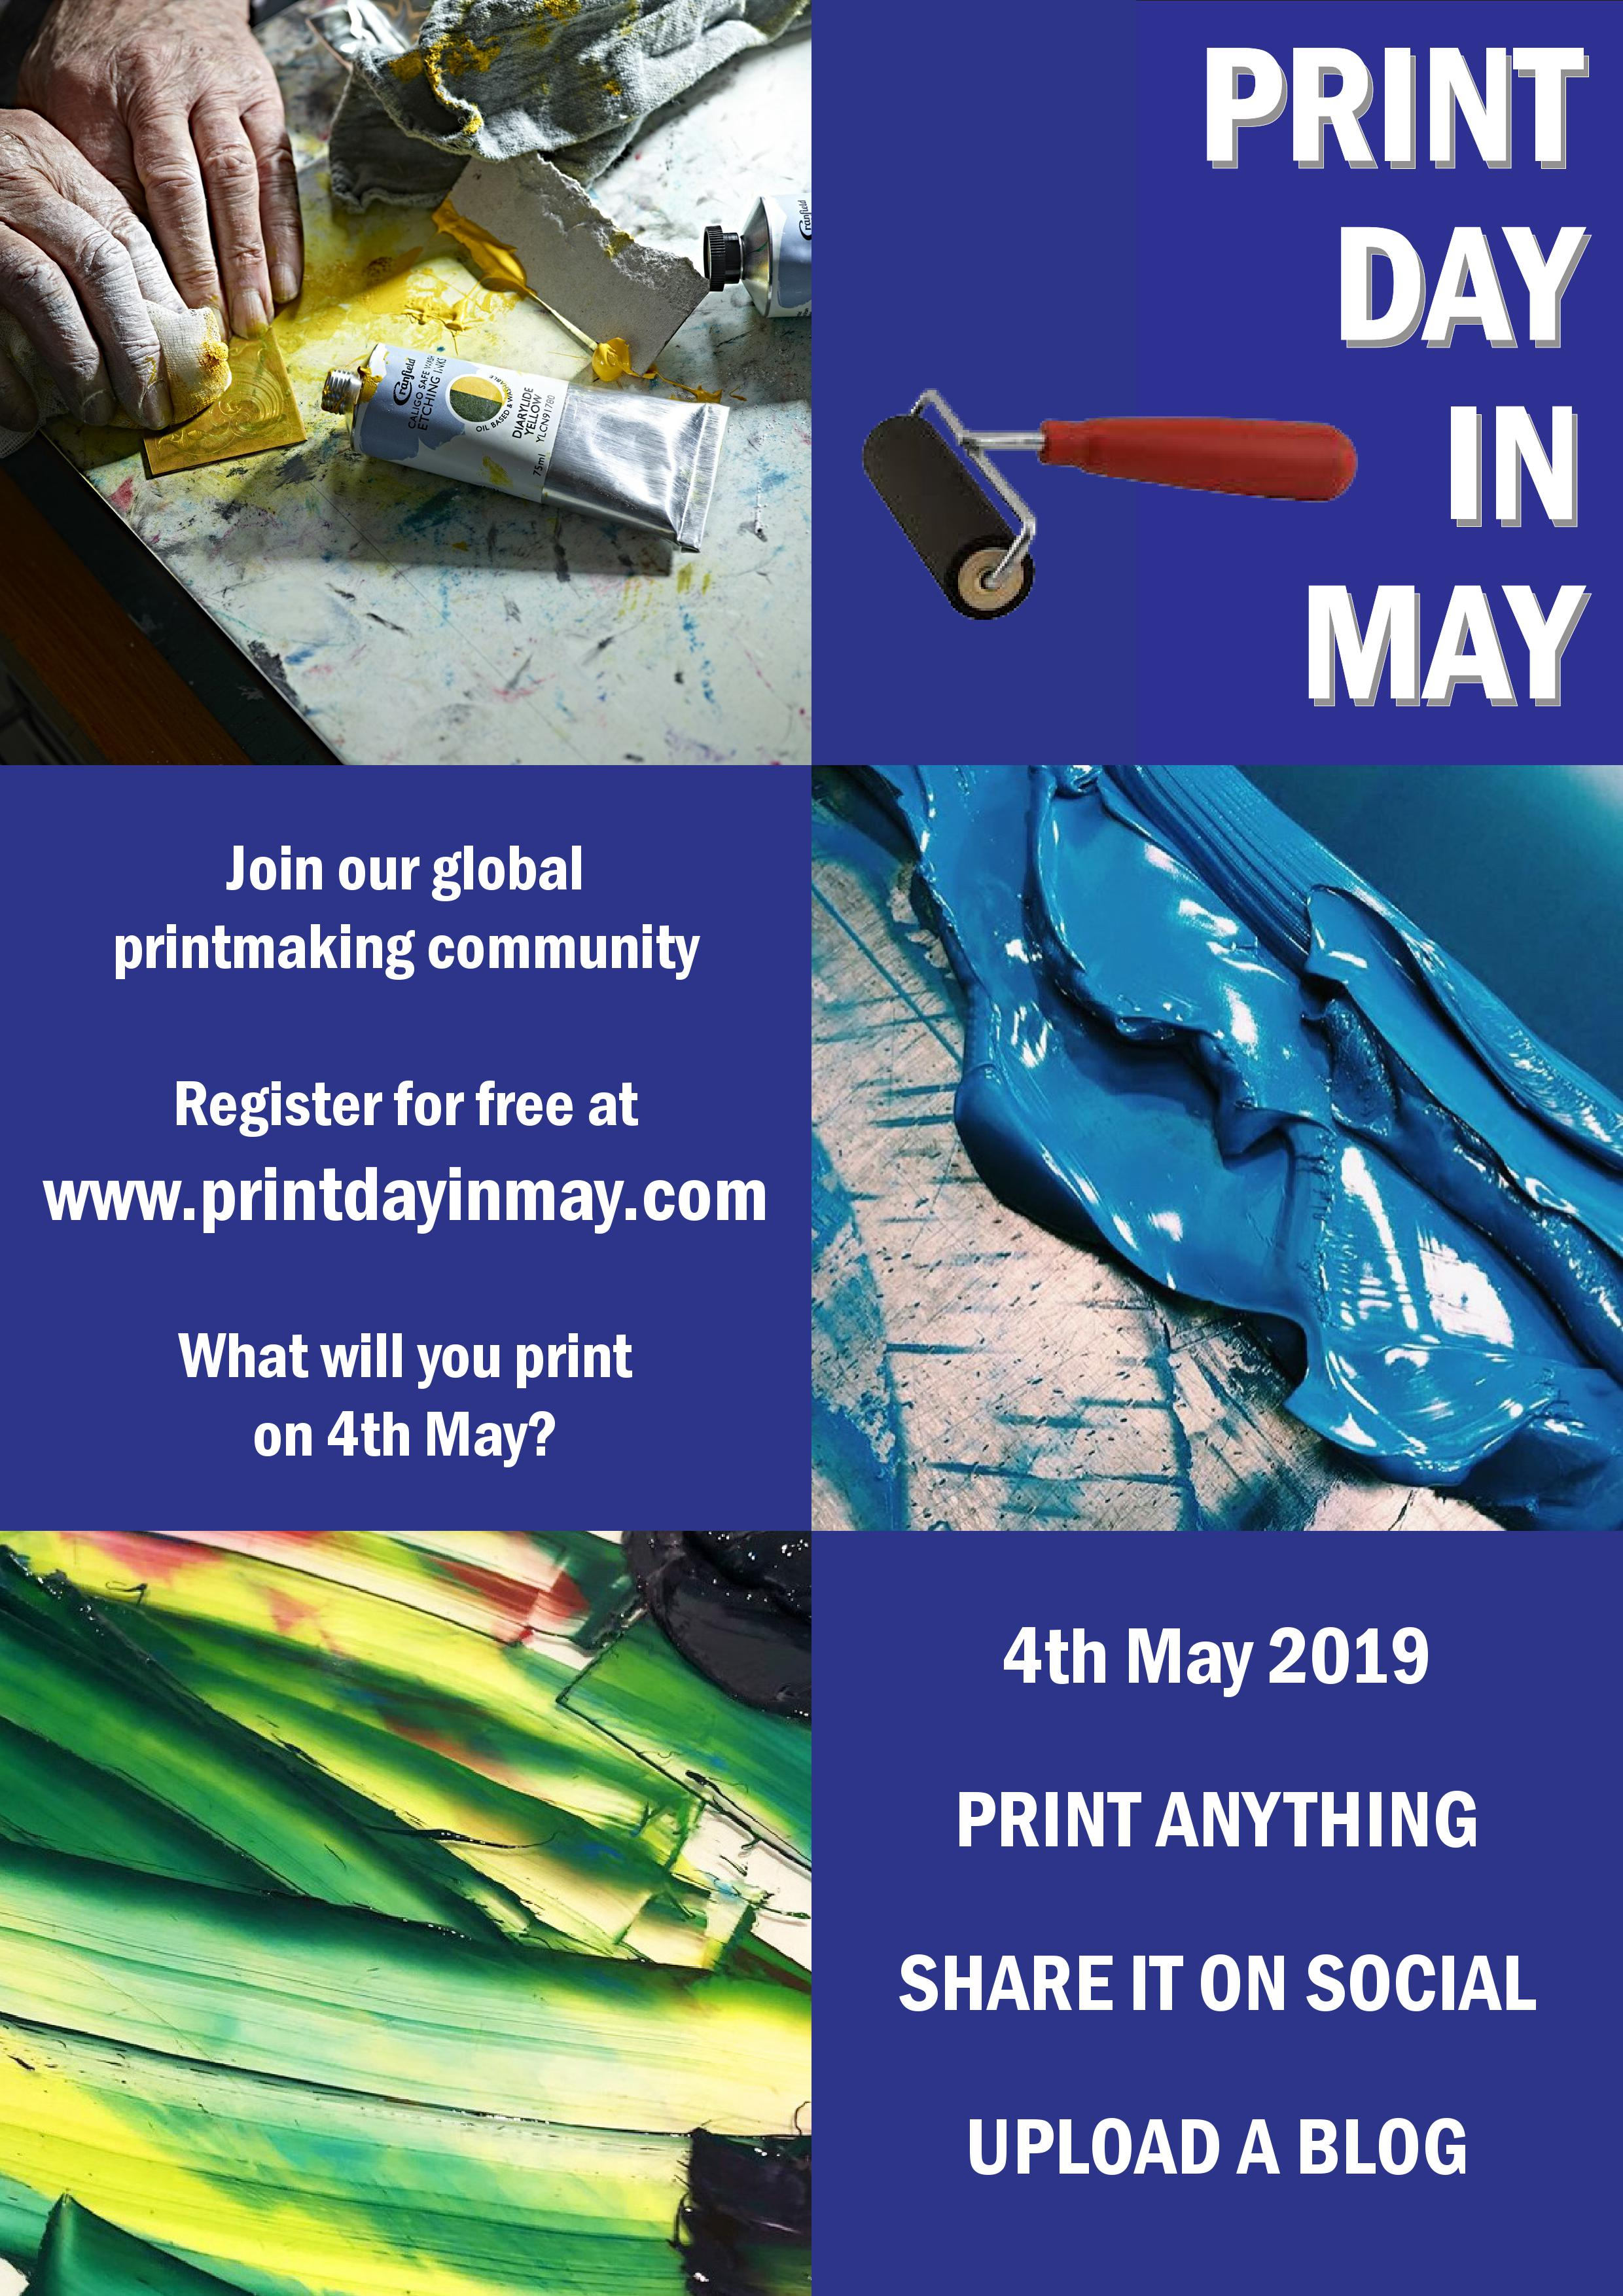 Print Day in May Poster by Sarah Edmonds_00001.jpg